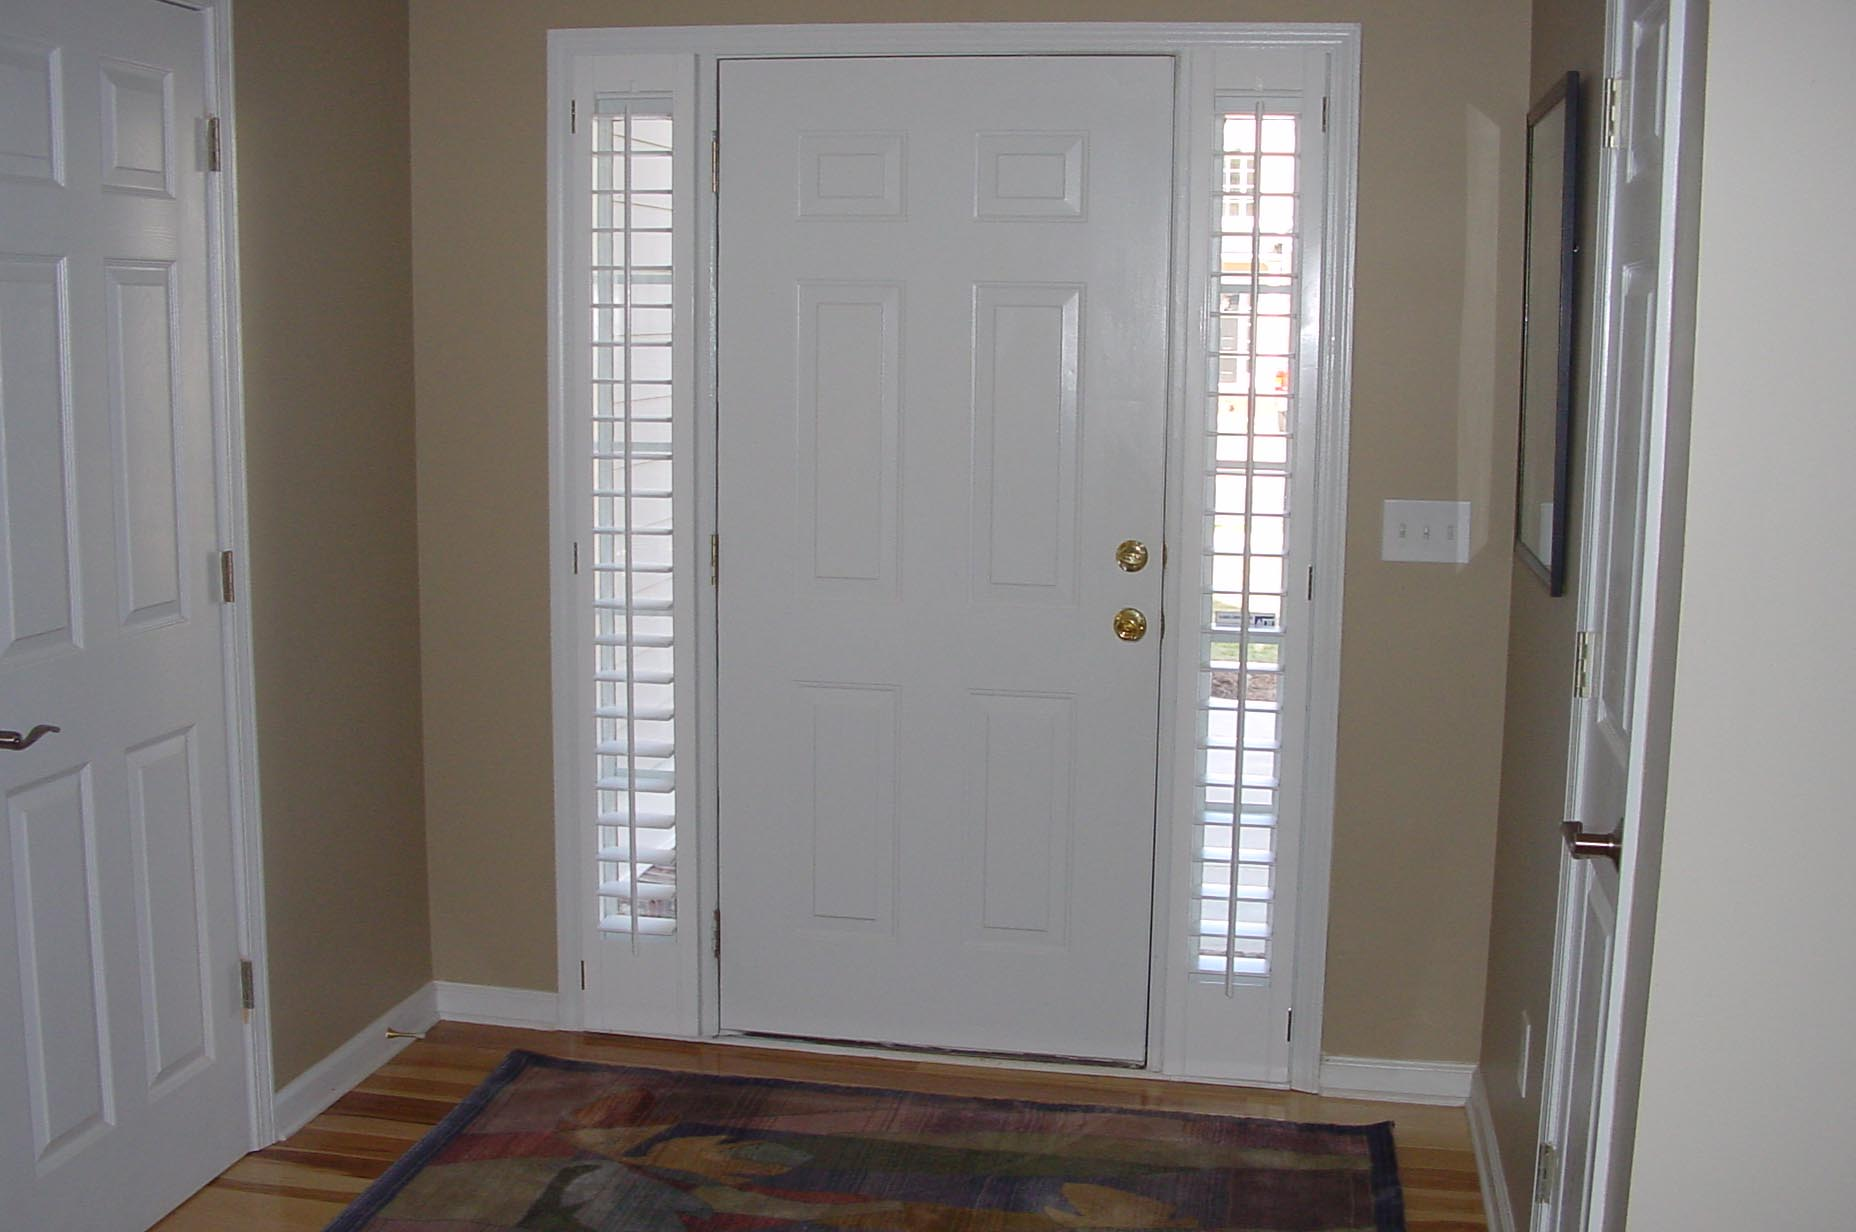 Door window blinds functionality window treatments for Window side design